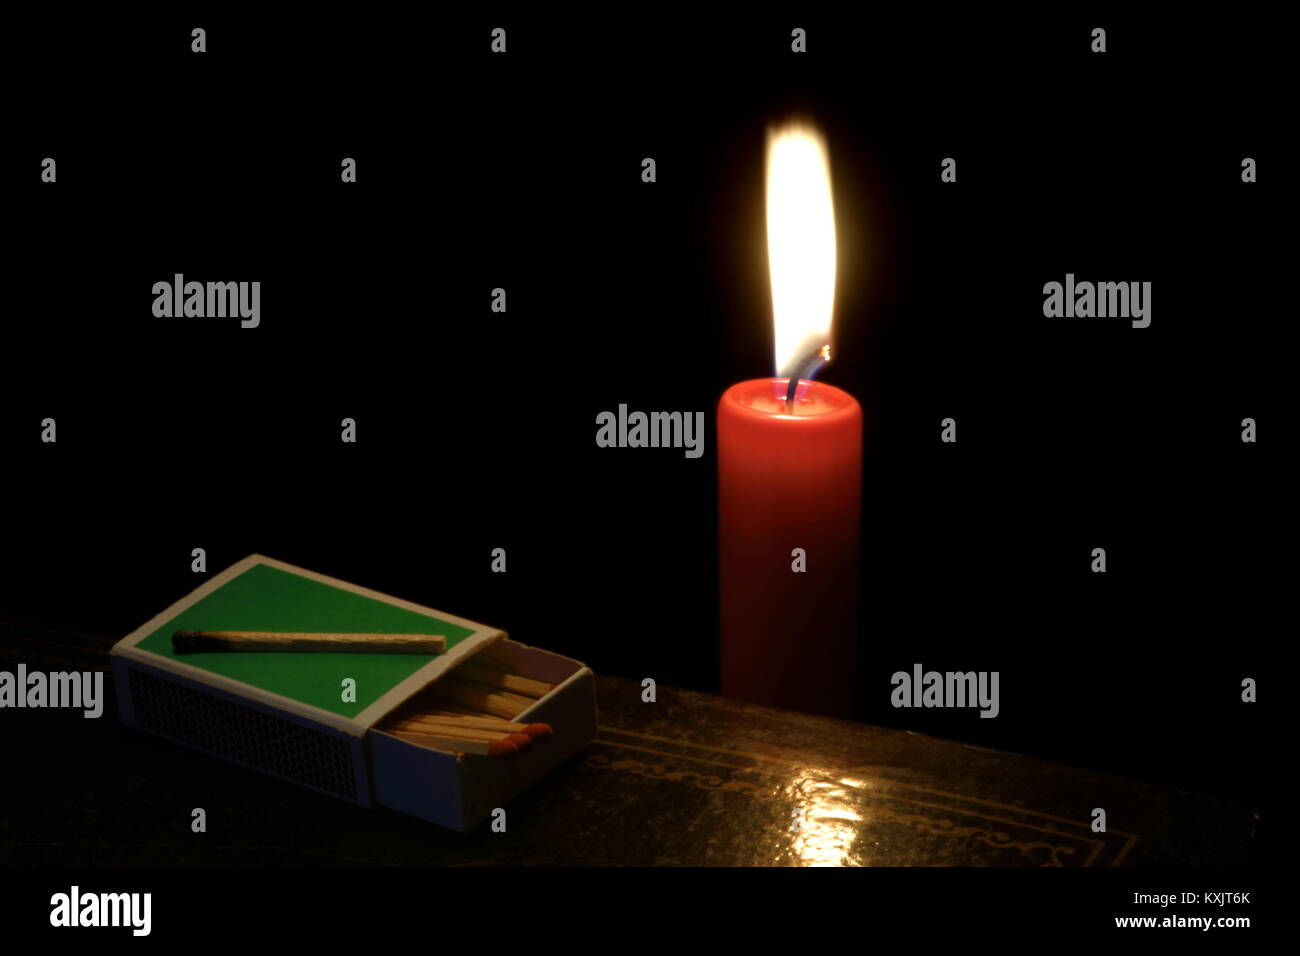 Closeup of a matchbox with a used match in the darkness on a book, with candle in the background. - Stock Image